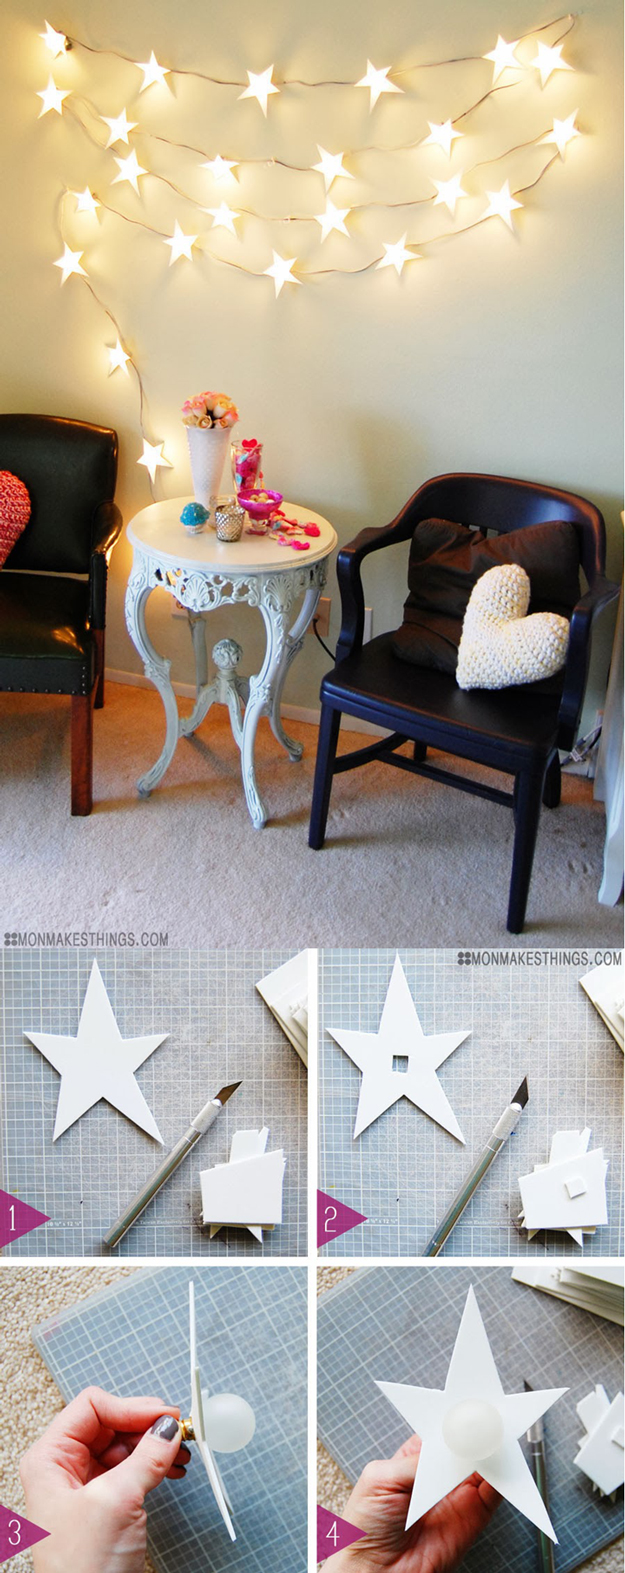 Genial String Light DIY Ideas For Cool Home Decor | Star Garland Christmas Light  DIY Are Fun